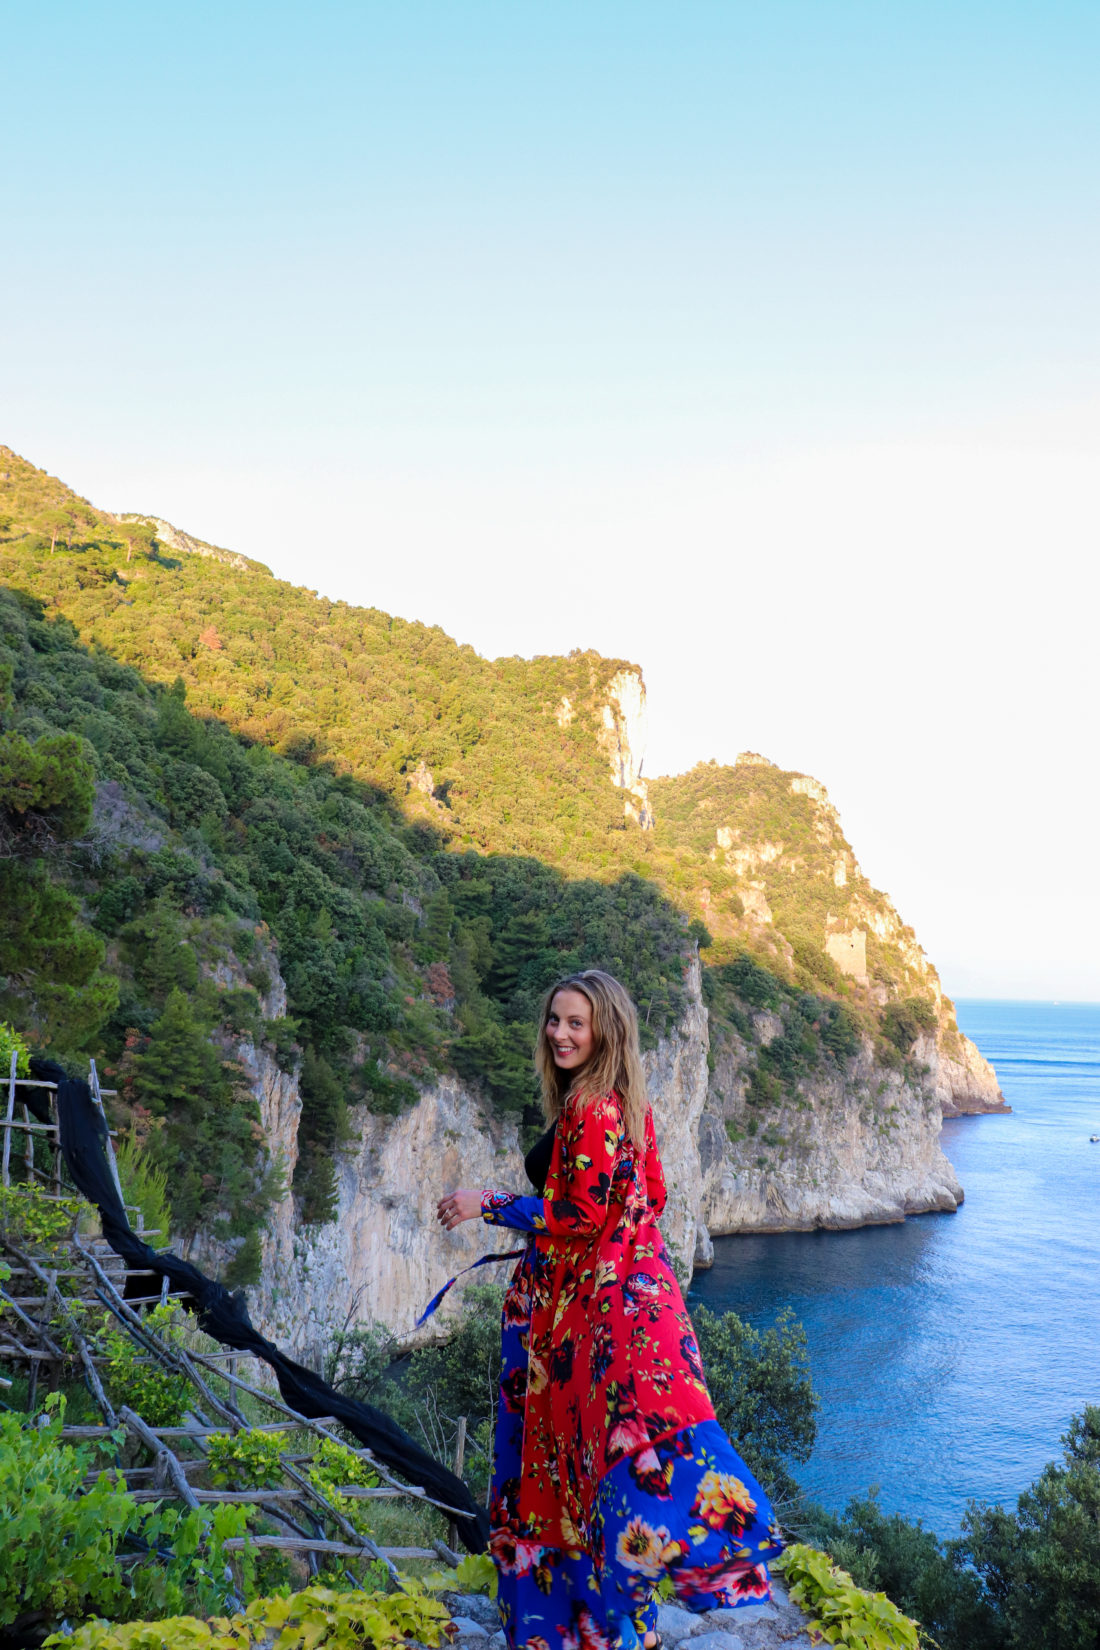 Eva Amurri Martino wears a colorful dress on the cliffs of Amalfi